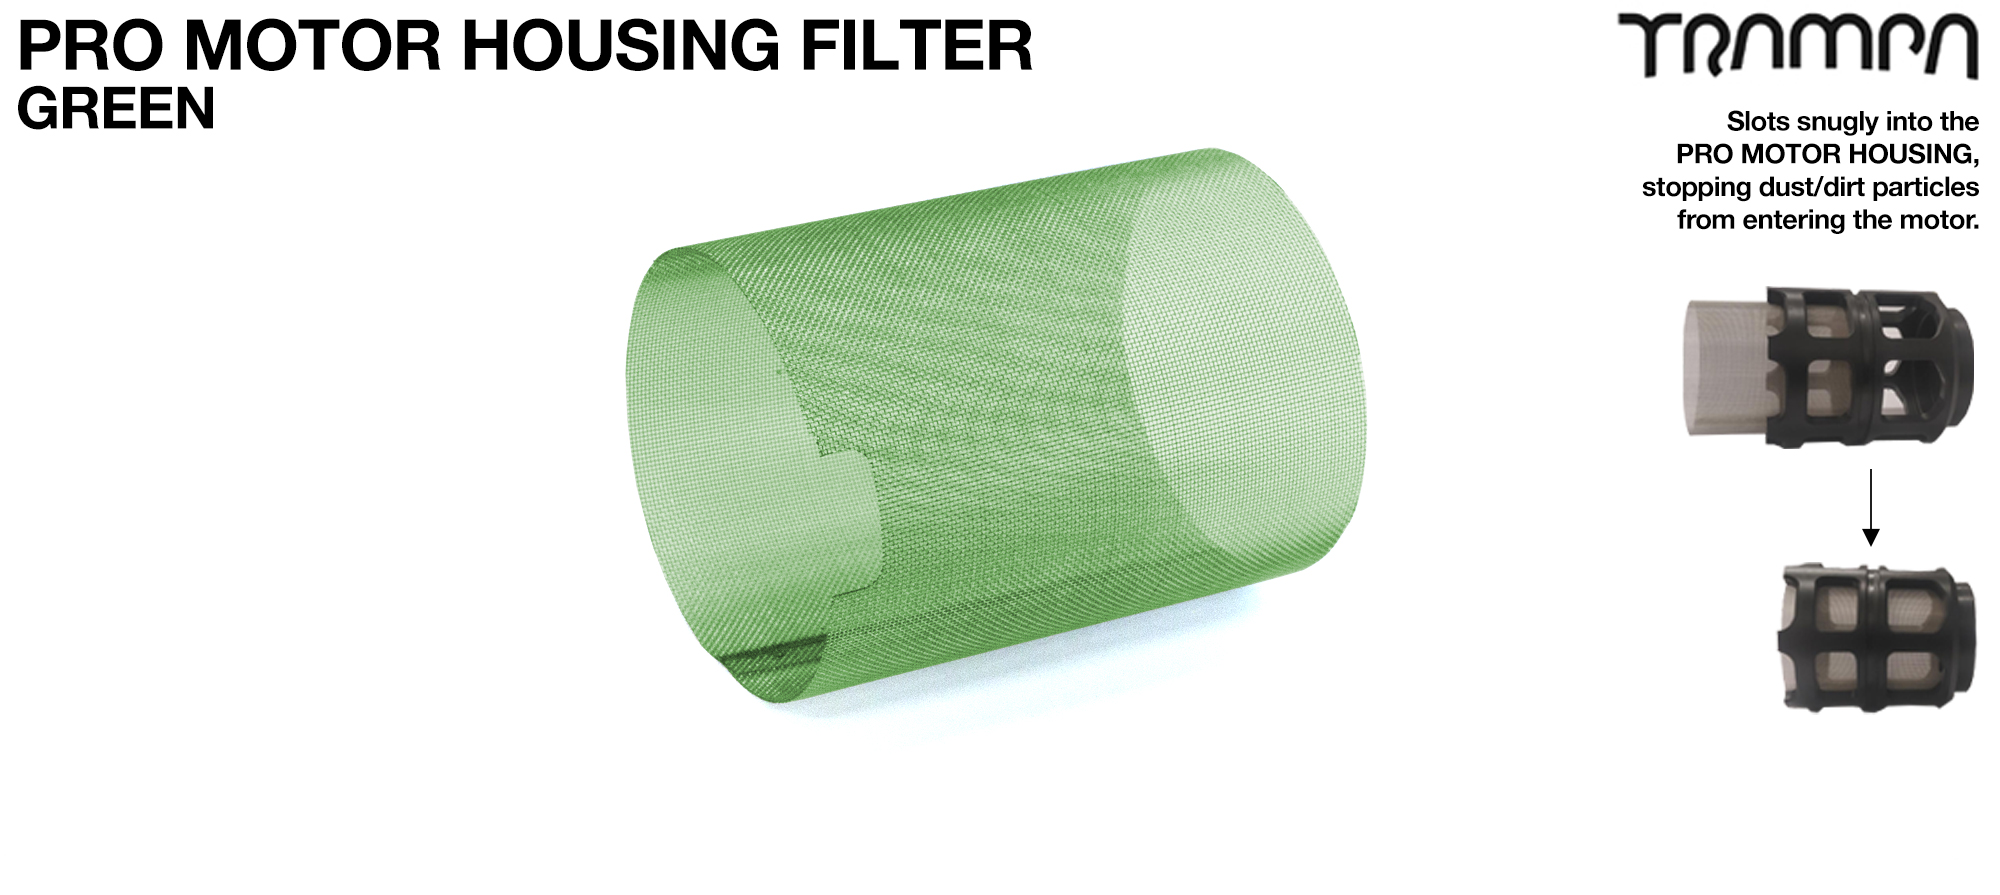 MkII Motor Protection Cover MESH FILTER - GREEN